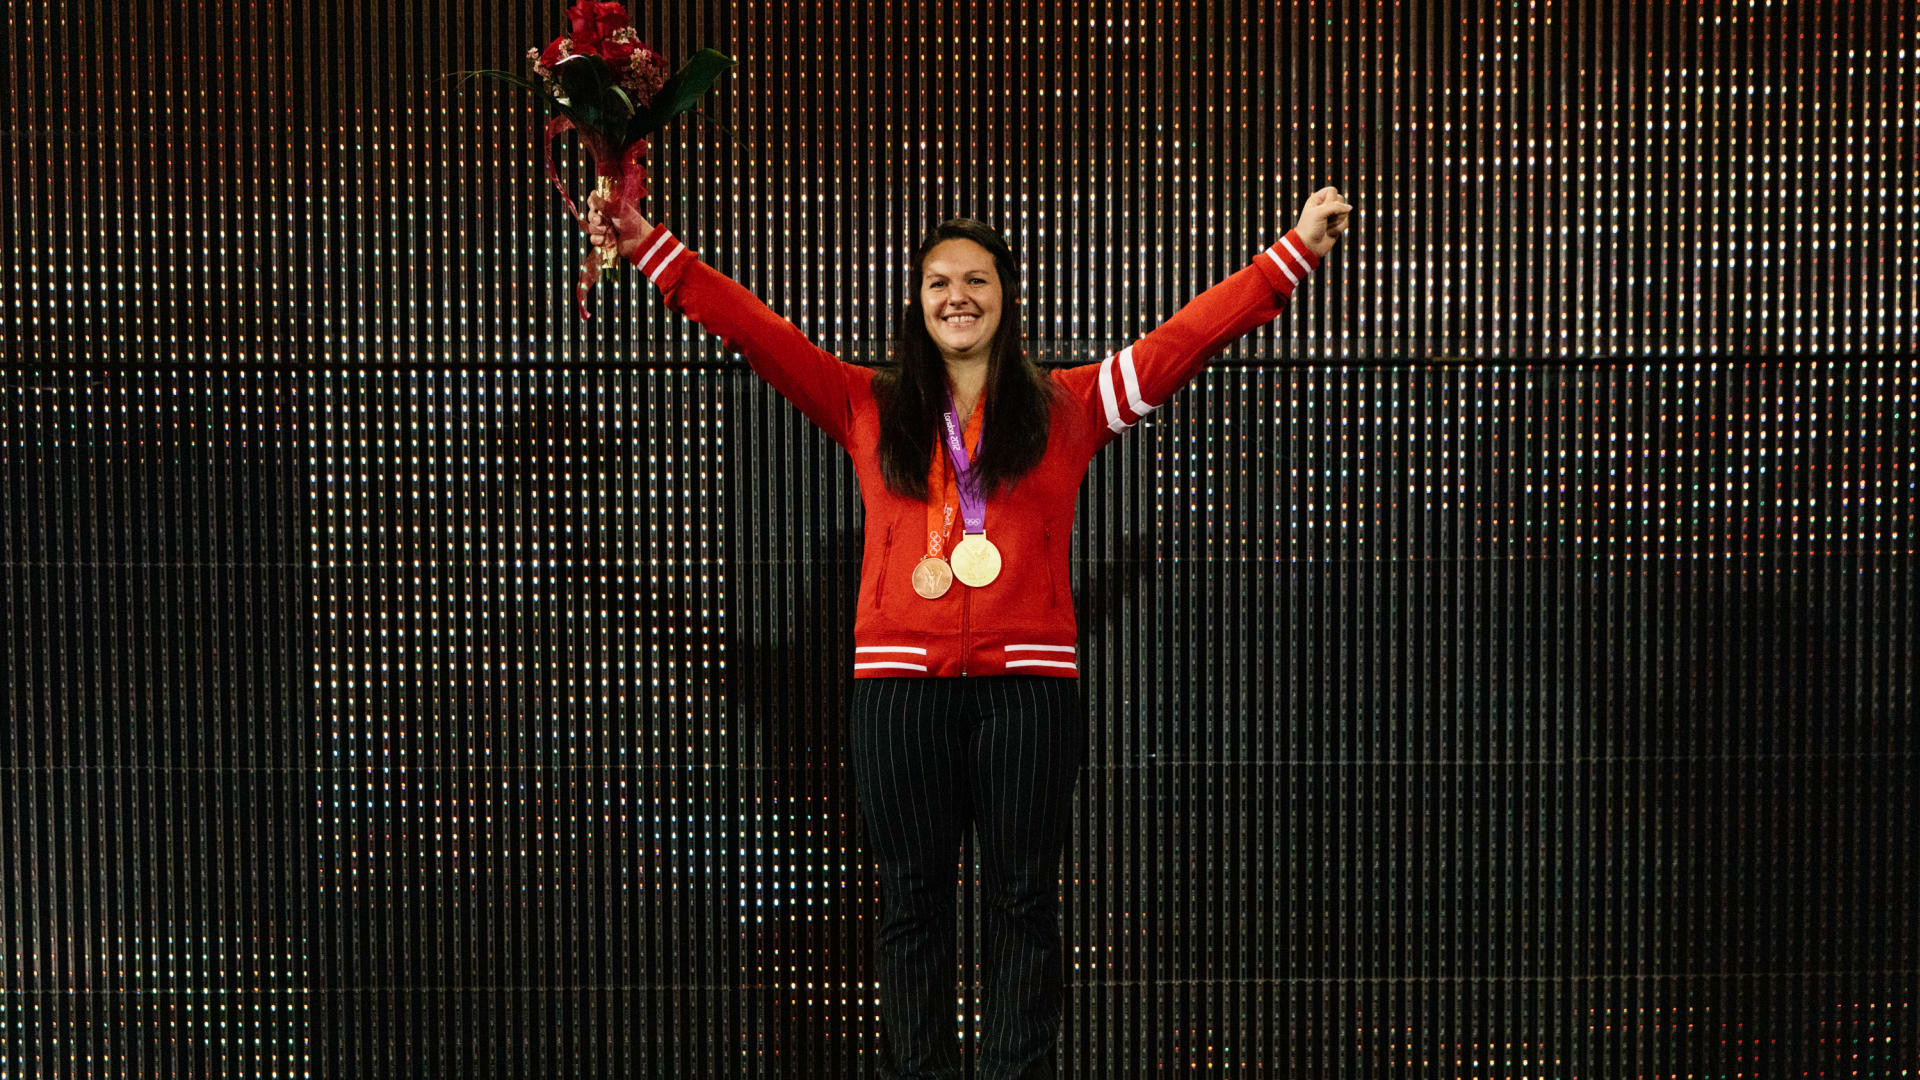 Canada's Christine Girard was presented with the Olympic gold medal from London 2012 last November after the two weightlifters in the under-63kg category ahead of her both tested positive for drugs ©Getty Images